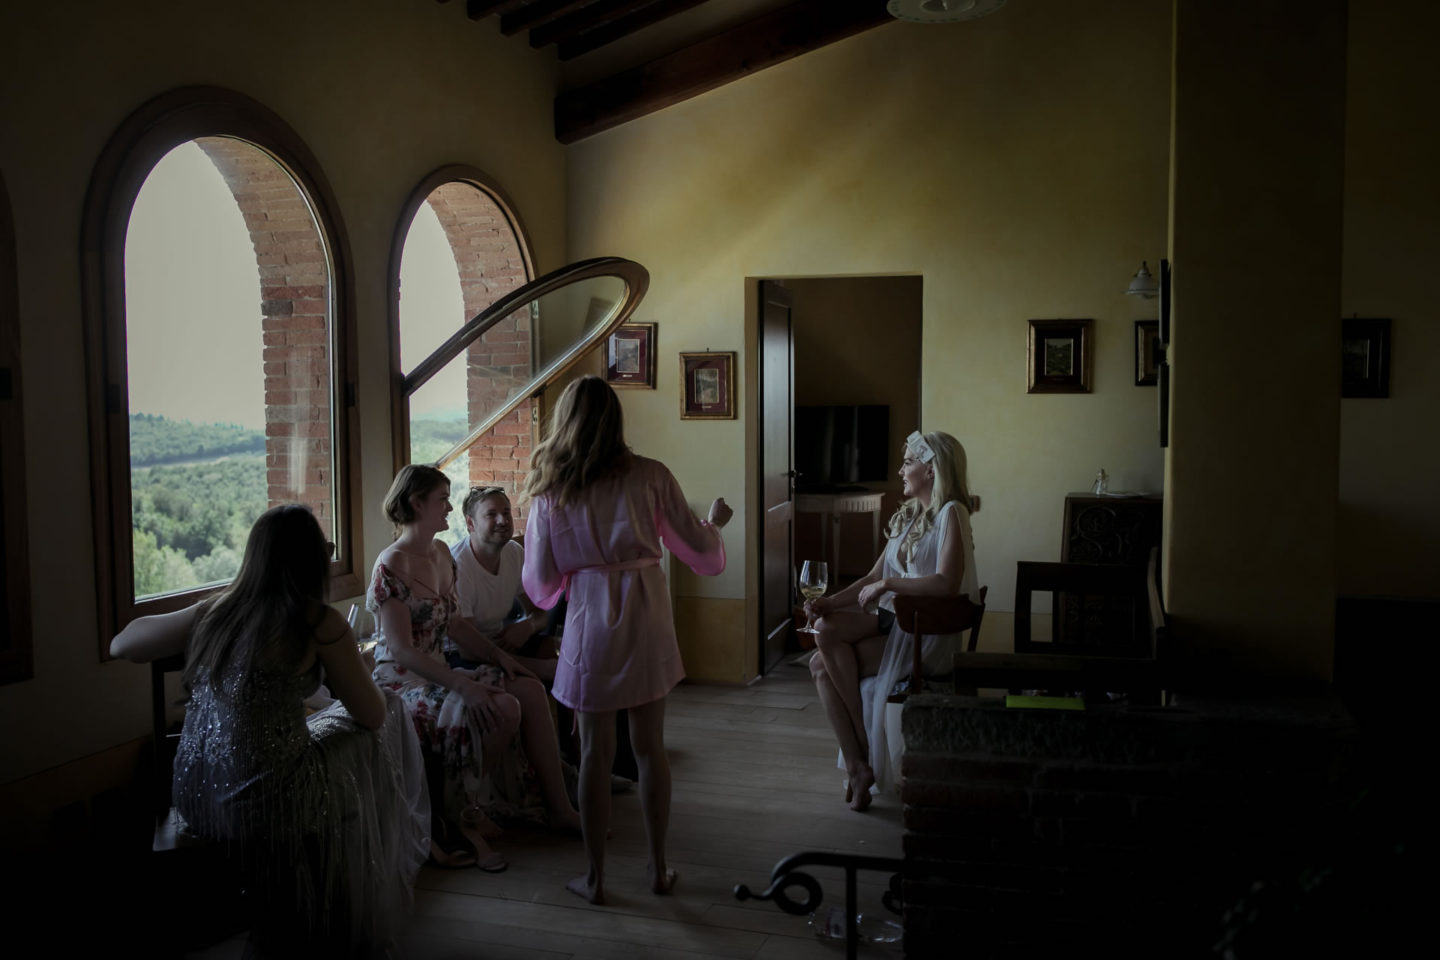 Friends :: Exciting wedding in the countryside of Siena :: Luxury wedding photography - 1 :: Friends